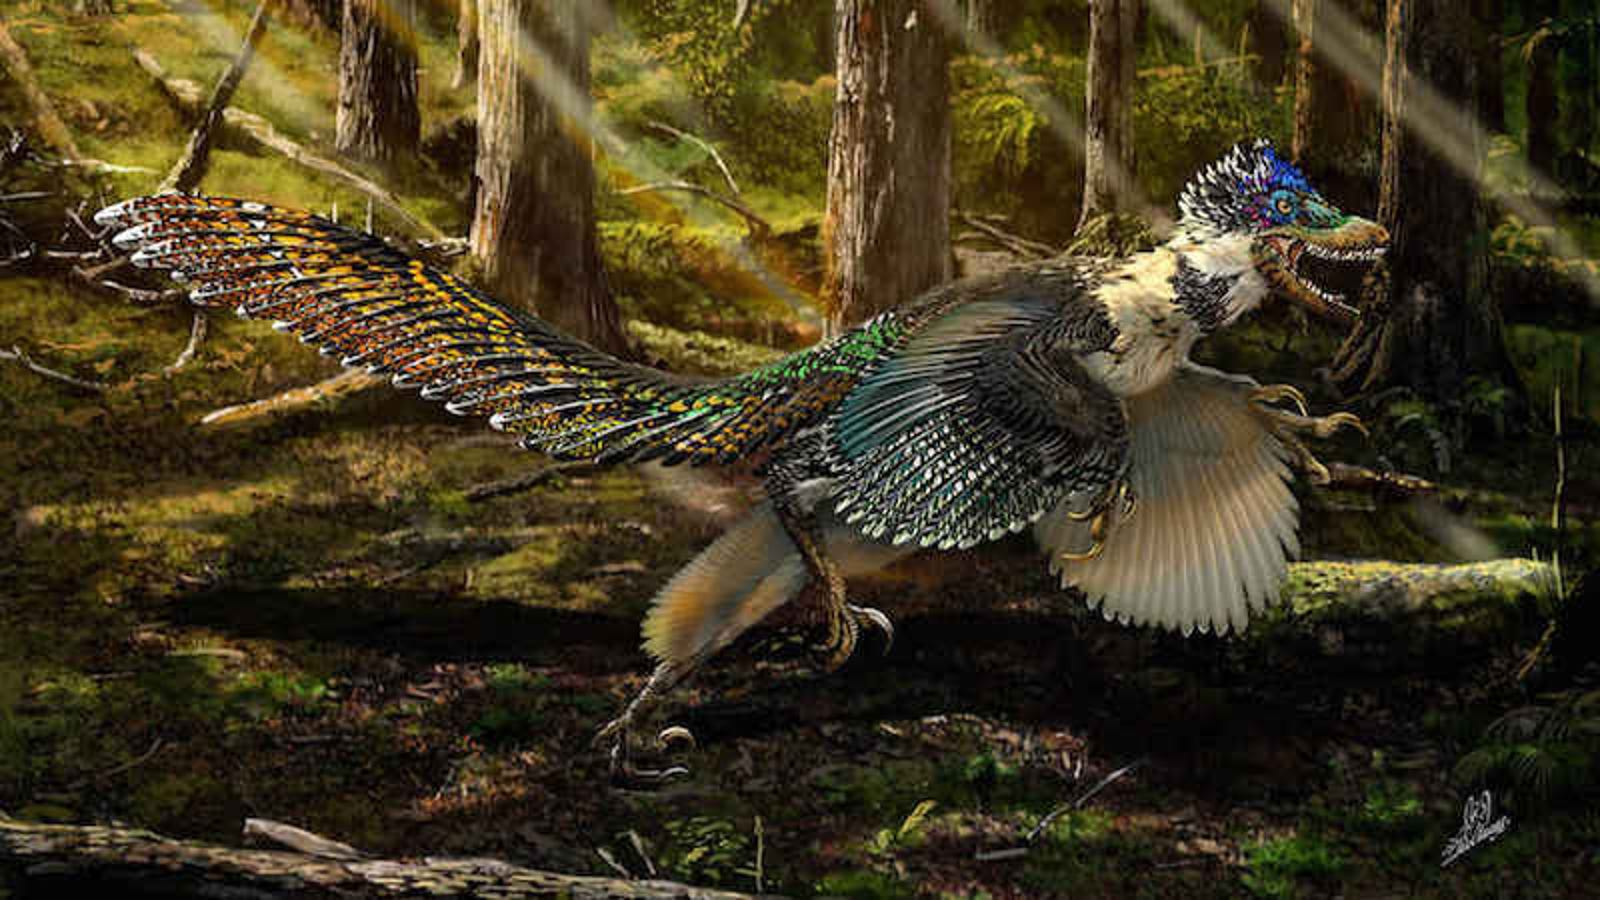 Dinosaurs More Likely Cooed Than Roared